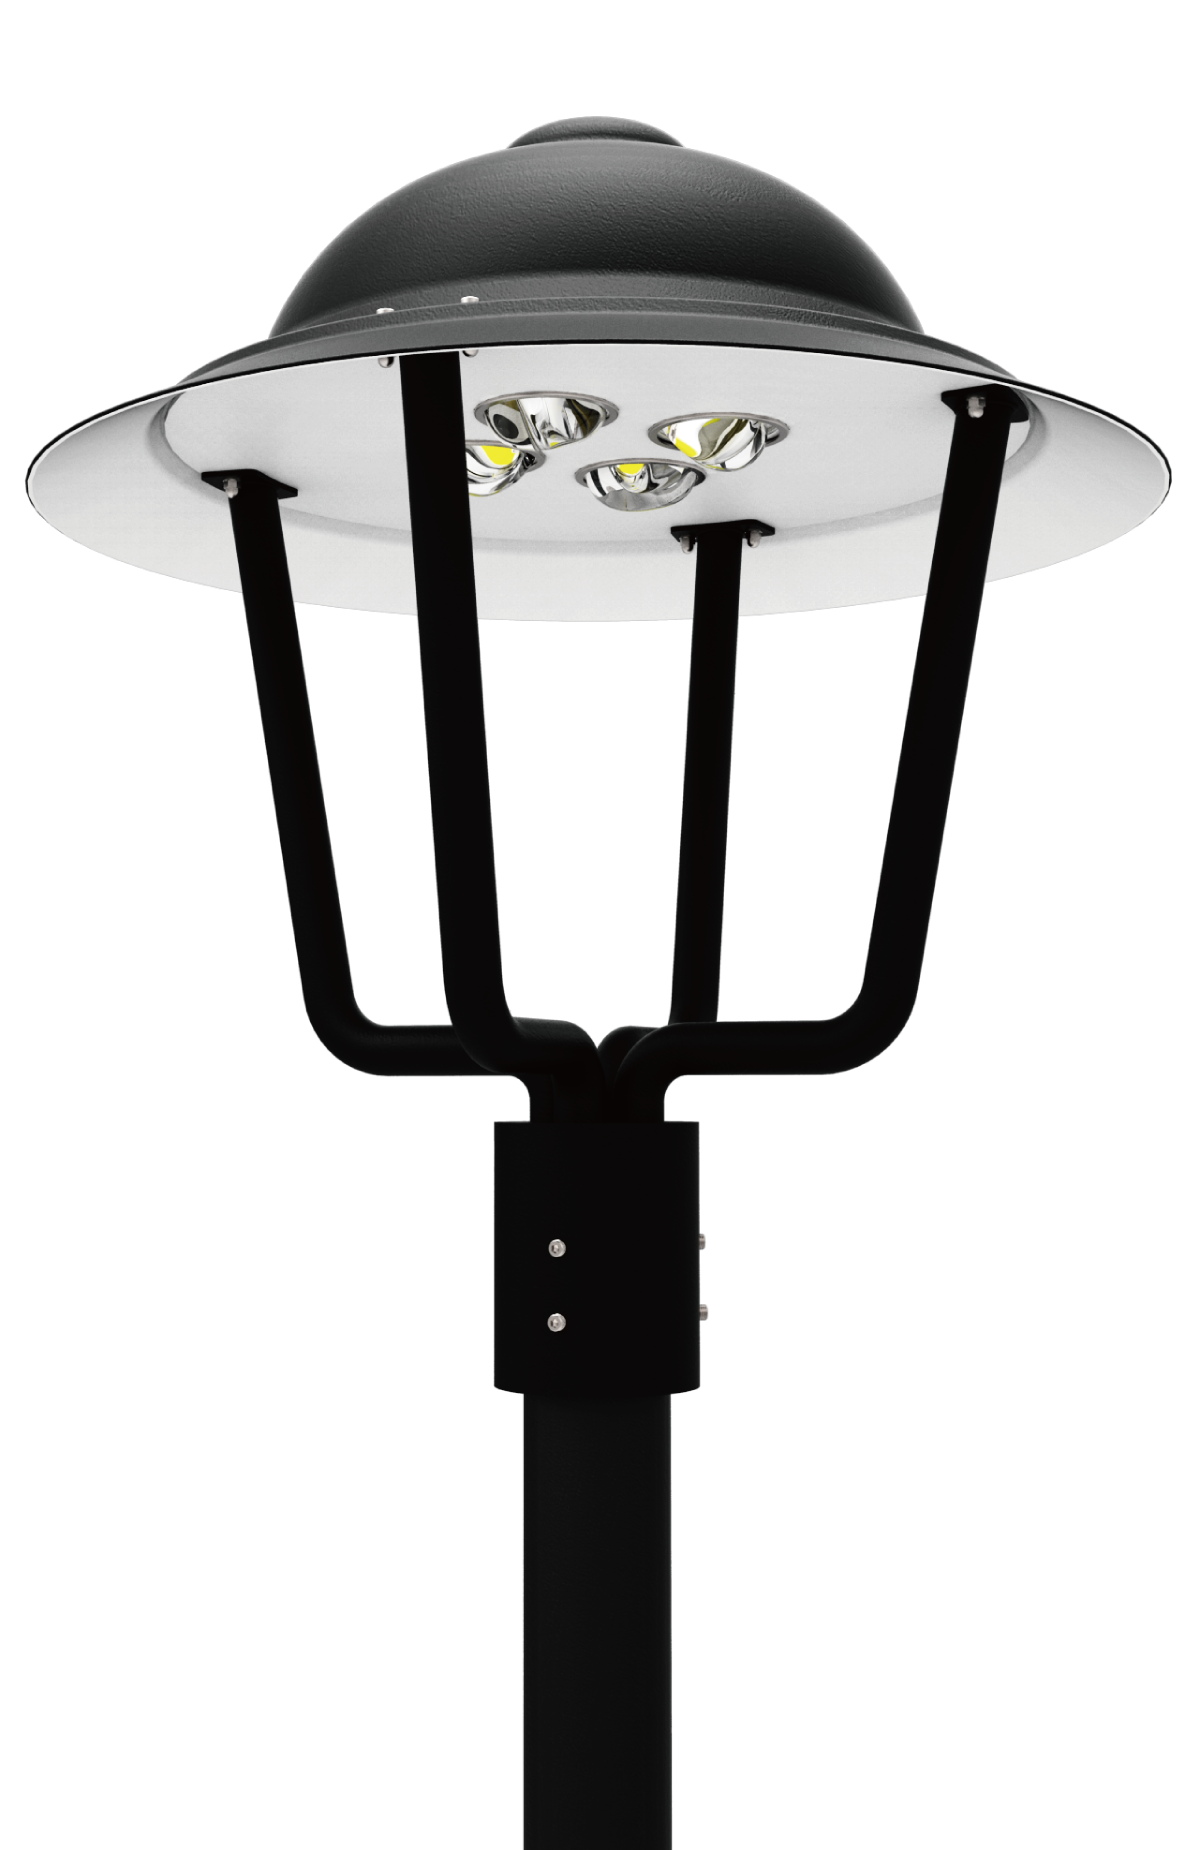 Led pt 110 series led post top area light fixtures americana led post top area light fixture led pt 110 series hd image aloadofball Image collections